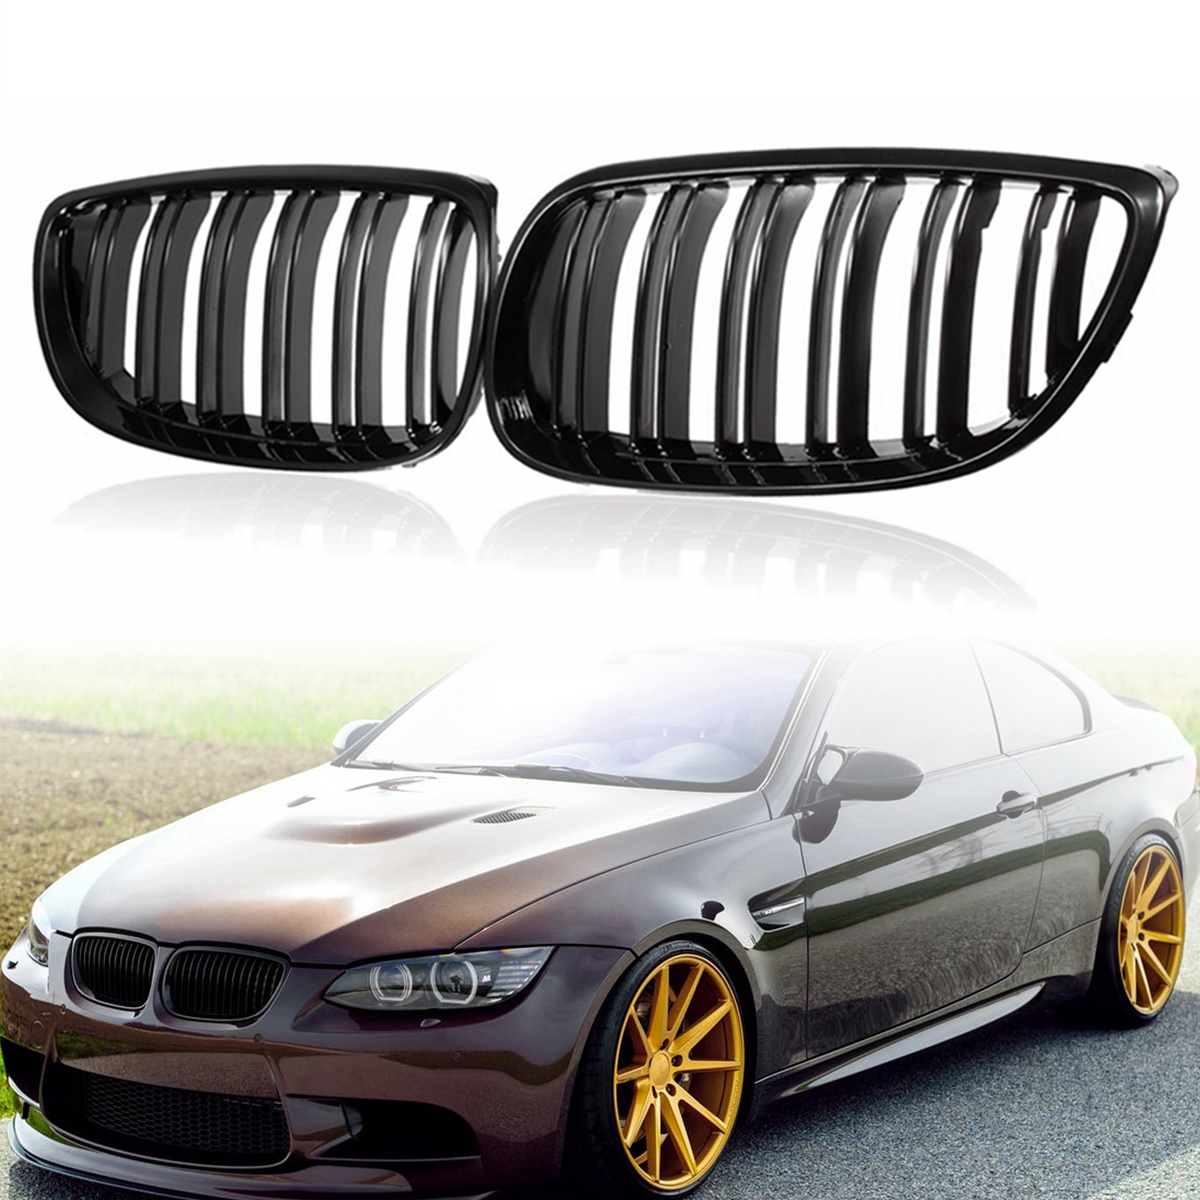 Pair Matte Black/Gloss black M Styling Double line Front Kidney Grille Grill For BMW 3-Series E92 E93 2007-2010 9 typesPair Matte Black/Gloss black M Styling Double line Front Kidney Grille Grill For BMW 3-Series E92 E93 2007-2010 9 types